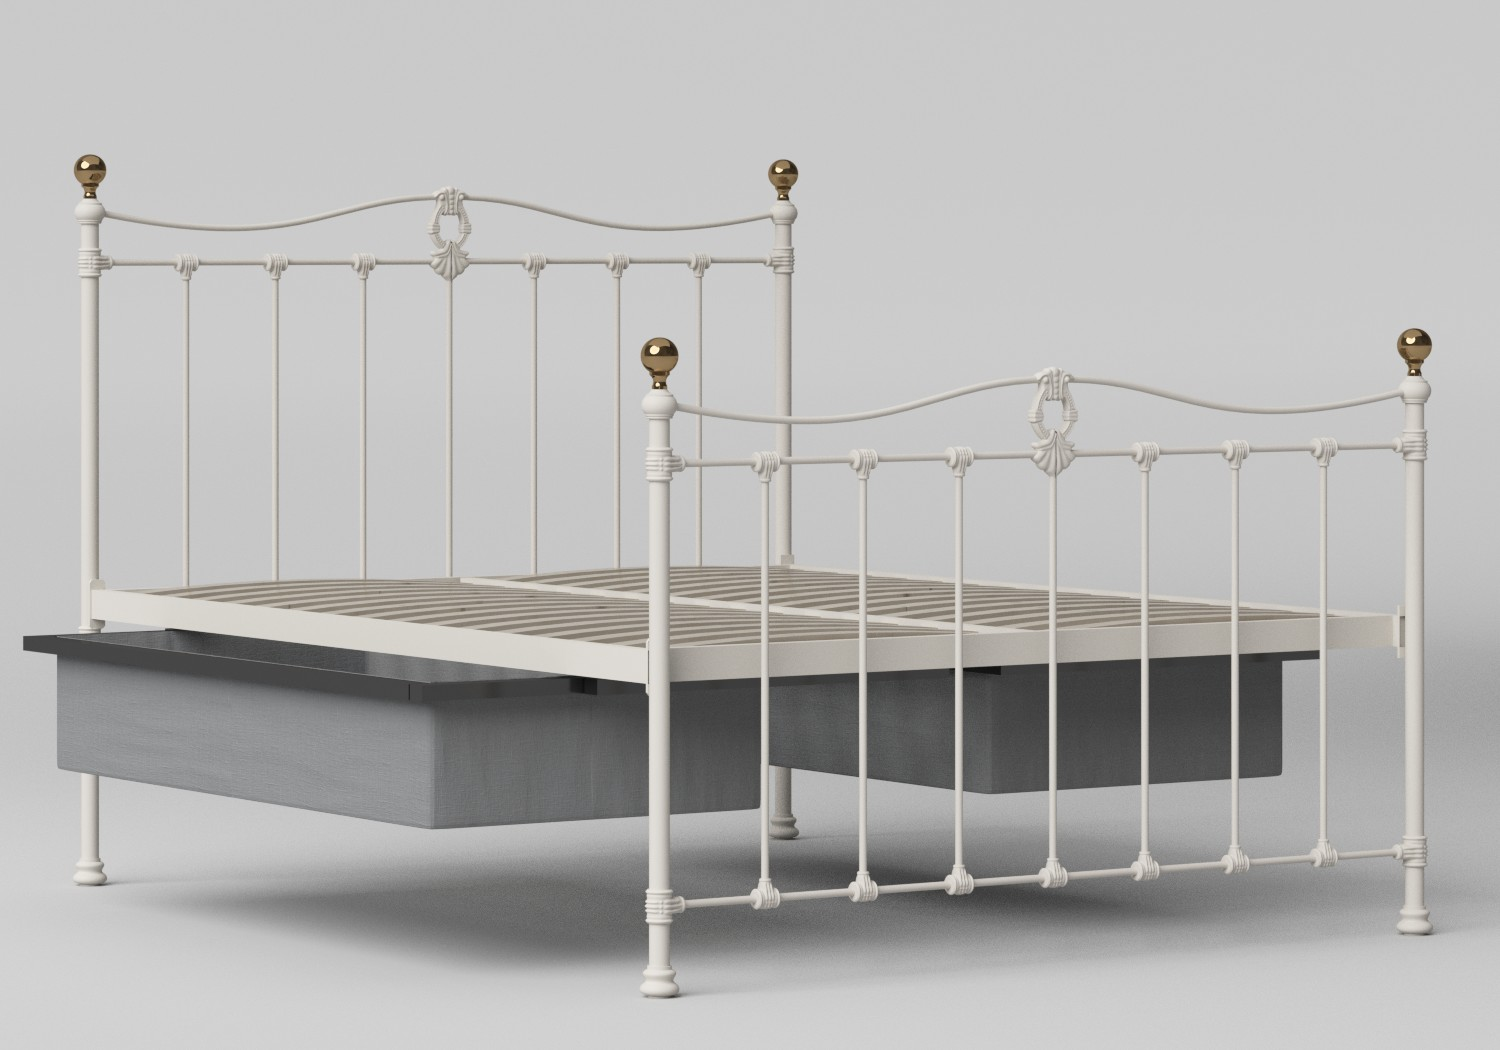 Tulsk Iron/Metal Bed in Glossy Ivory with Brass details shown with underbed storage